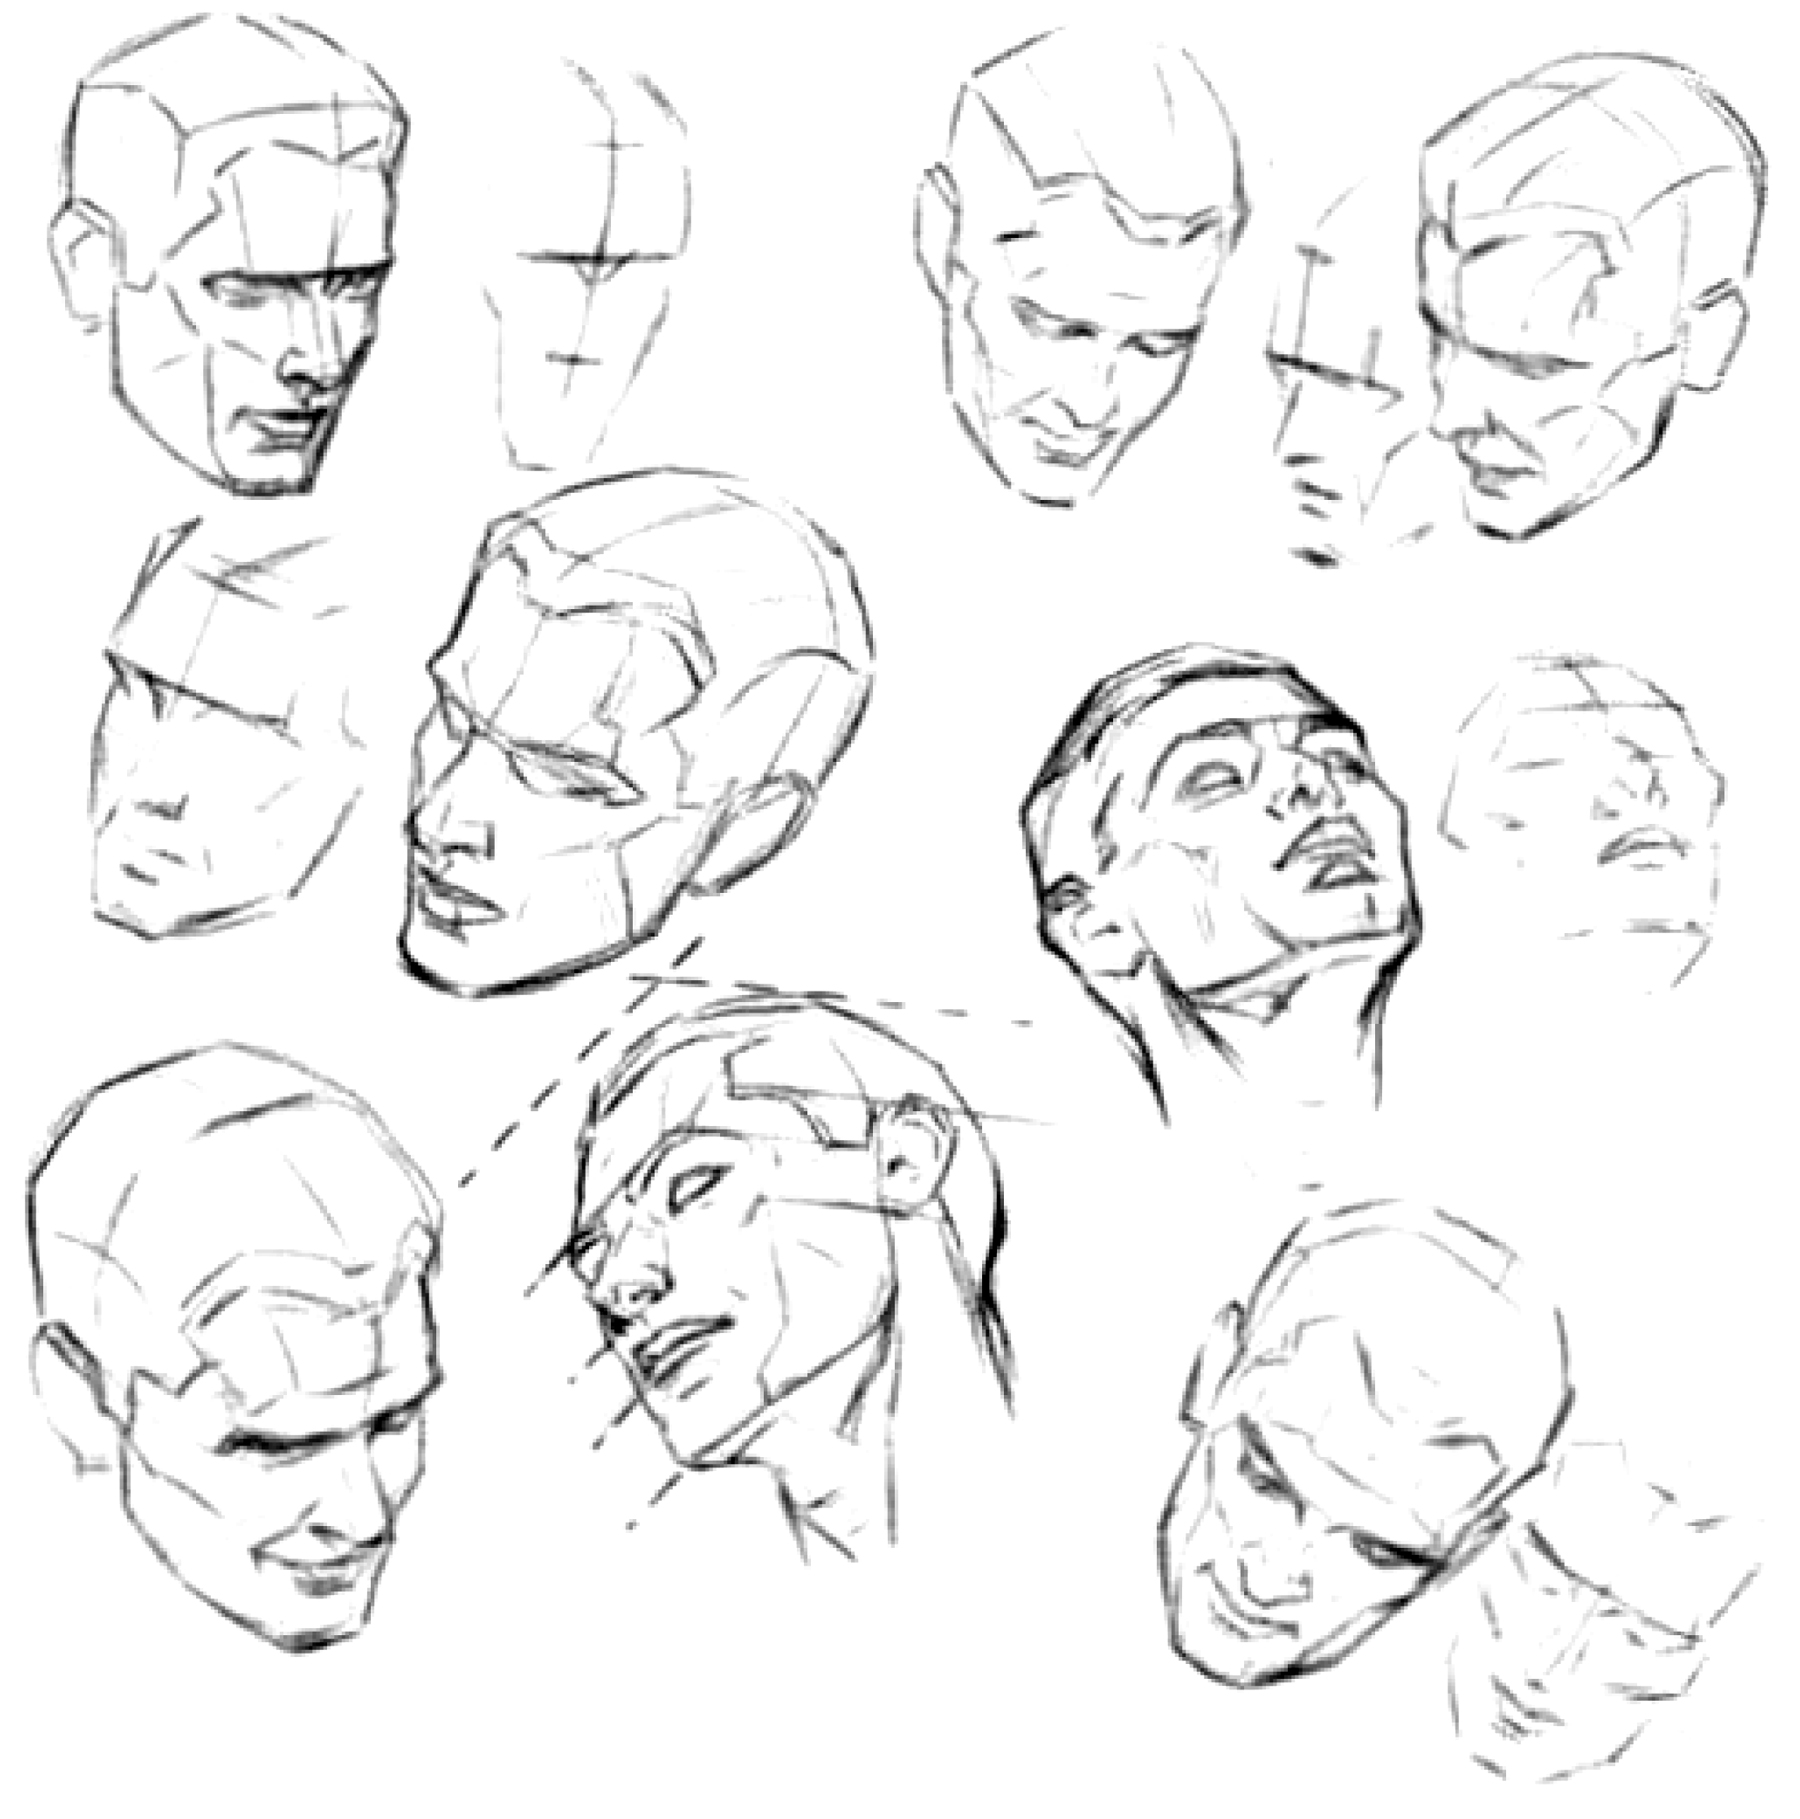 How to Draw the Face and Head in Perspective to Keep